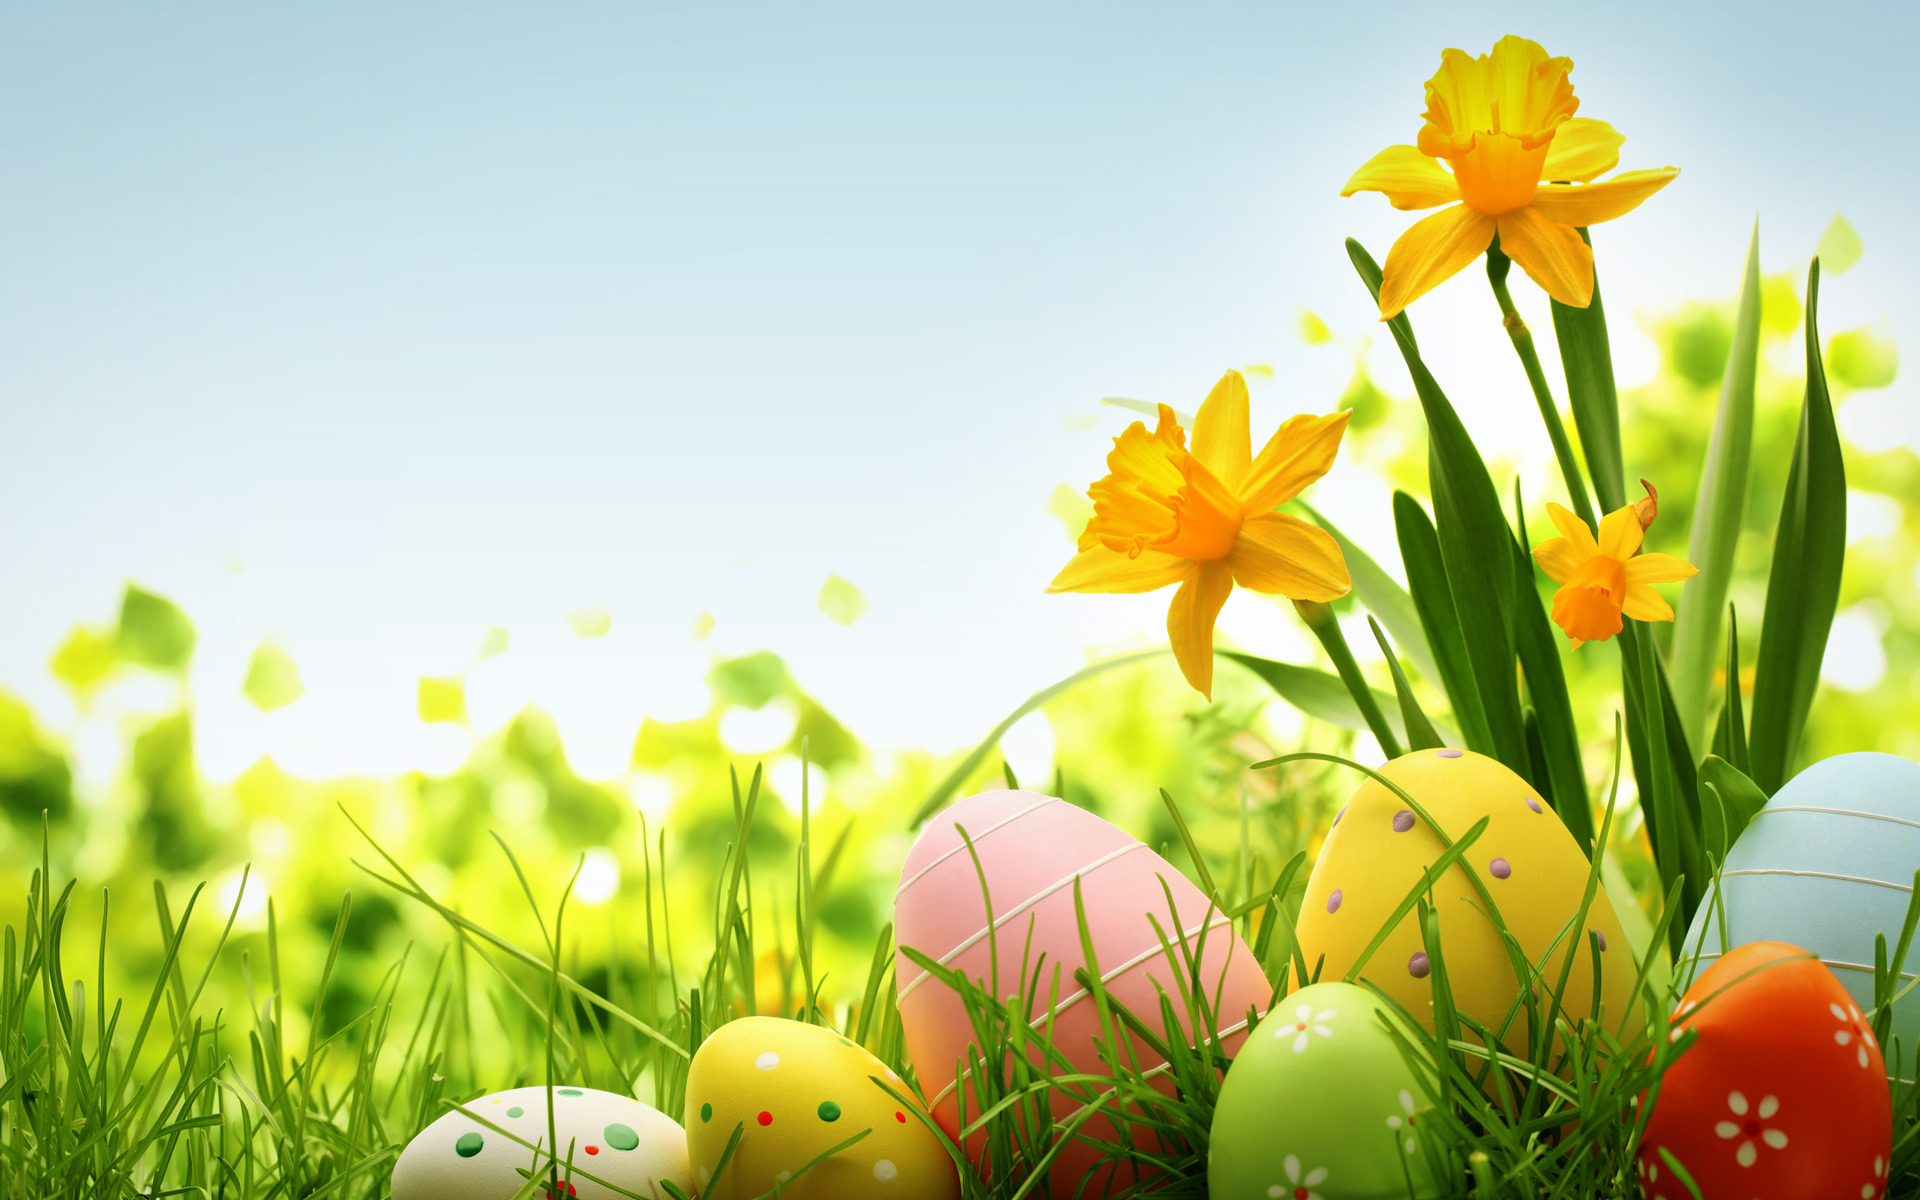 Top 10 Easter Wallpapers And Theme For Windows 10 All For Windows 10 1920x1200